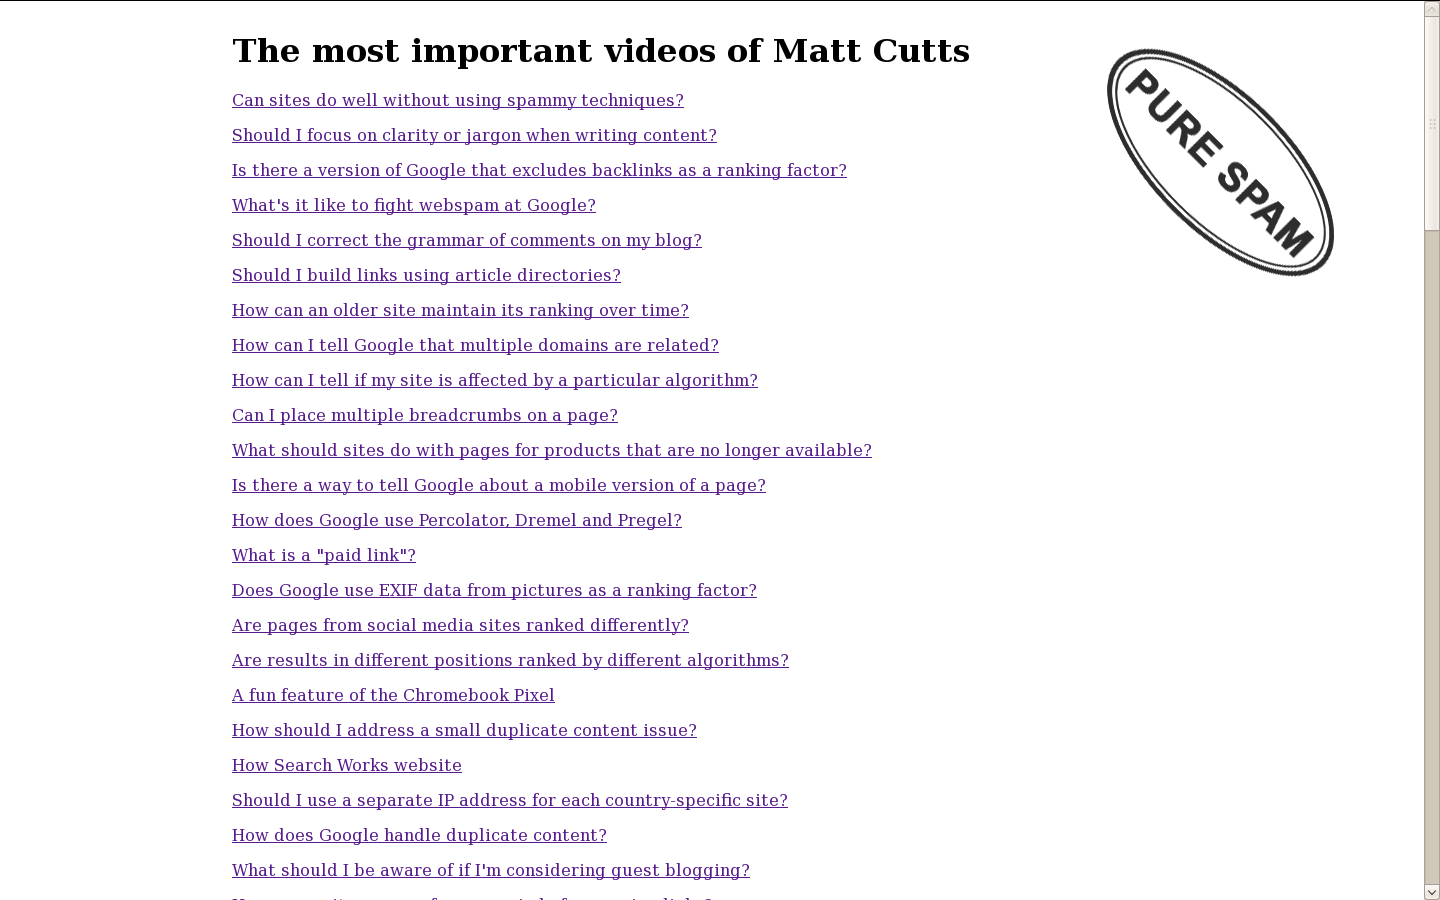 Matt Cutts - Pure spam